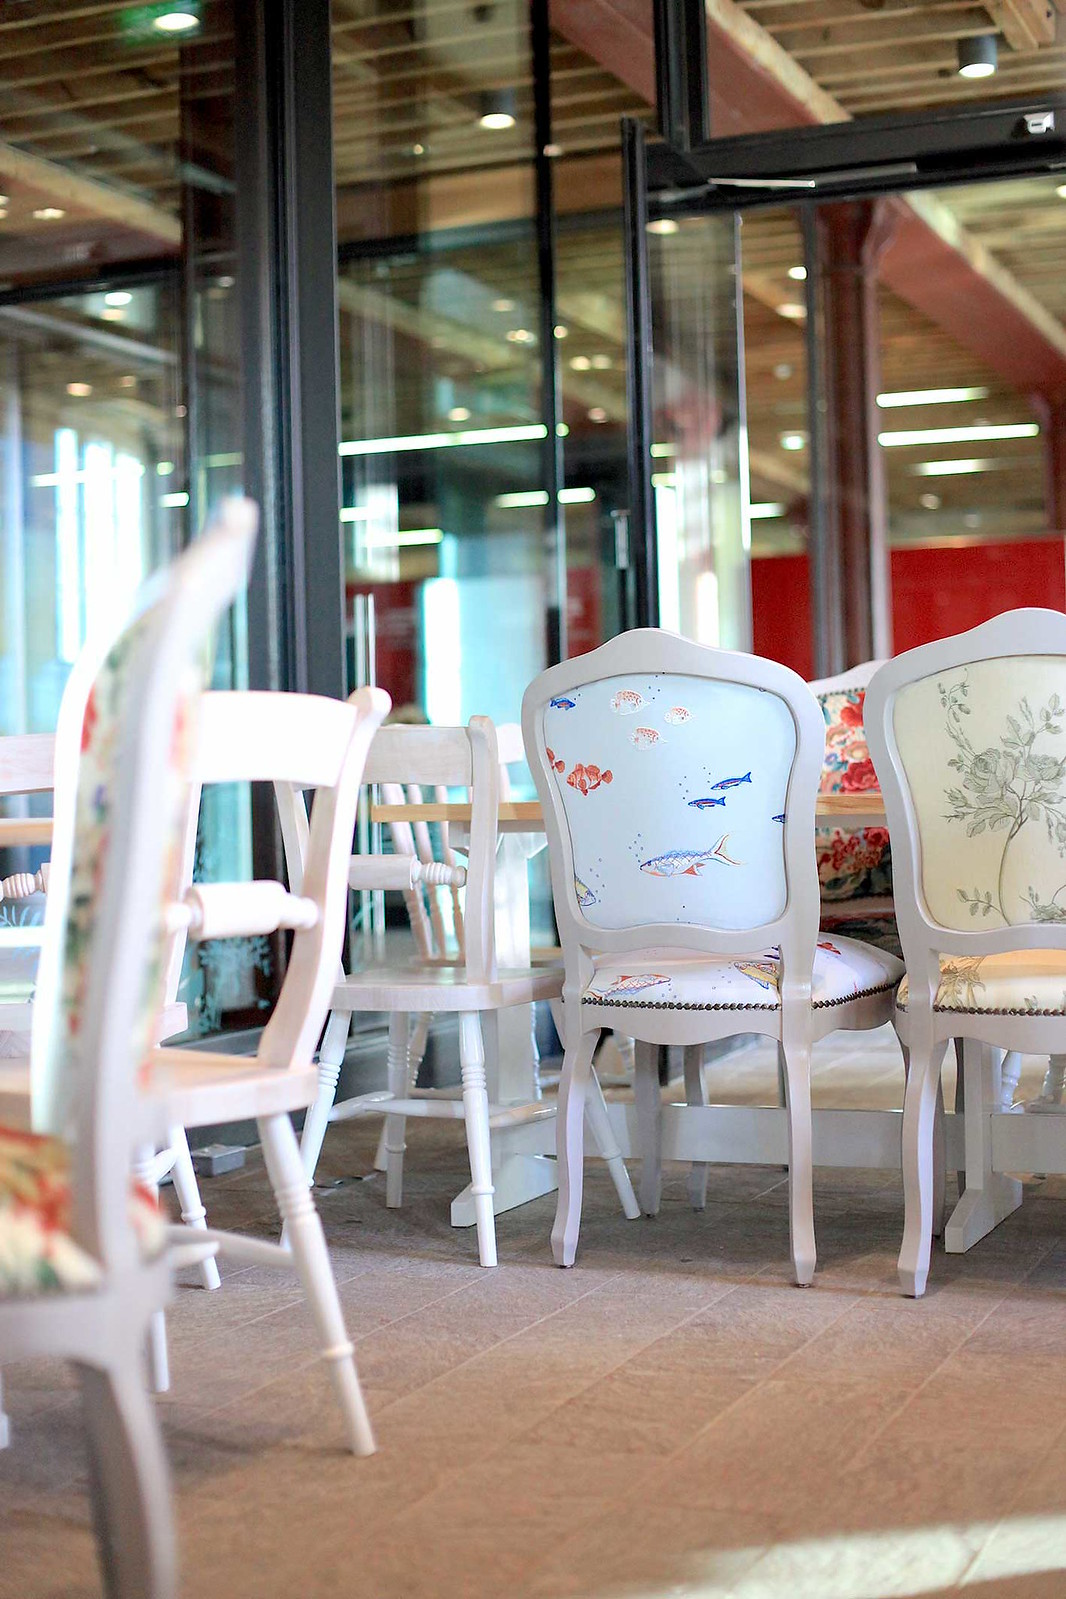 under-the-sea-fish-print-chairs-at-yumchaa-coffee-shop-in-kings-cross